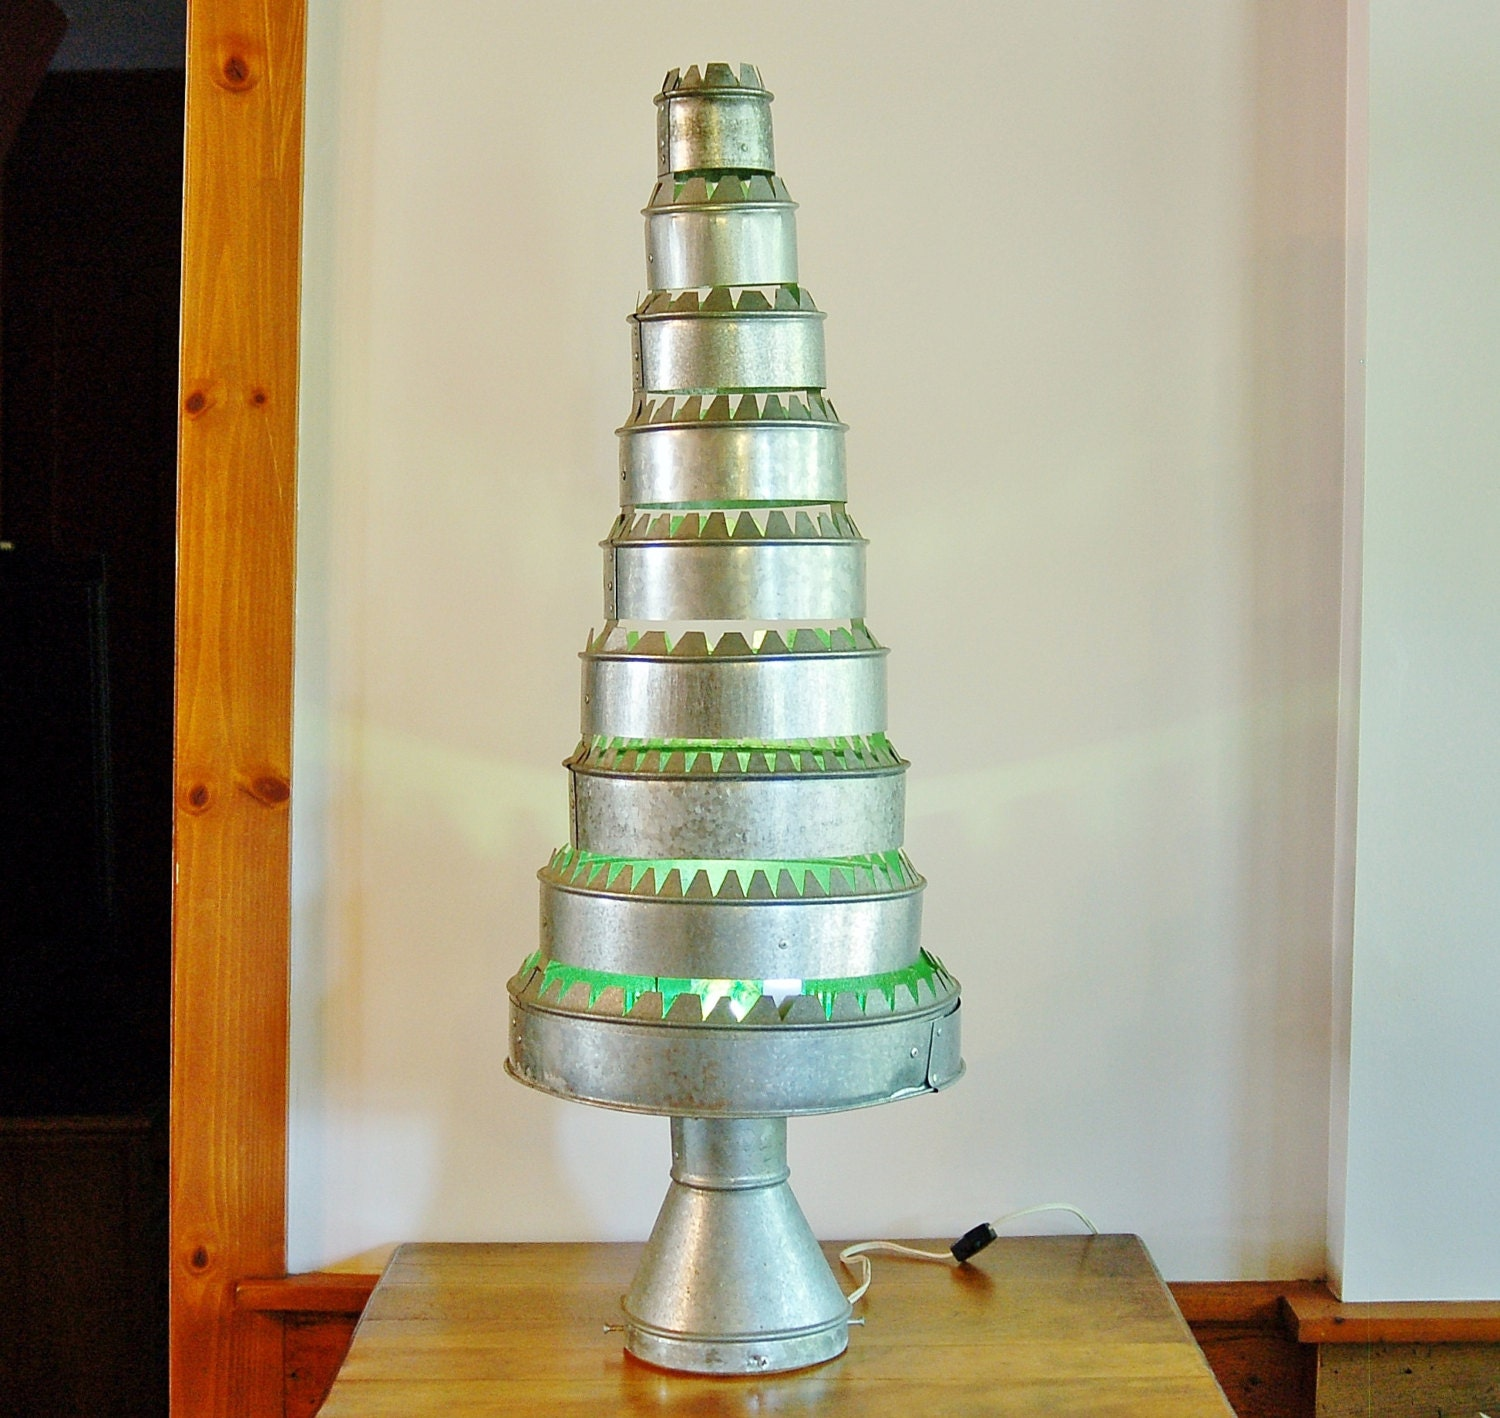 Metal Tabletop Christmas Tree: Galvanized Metal Christmas Tree Hand Made Kitschy Rustic